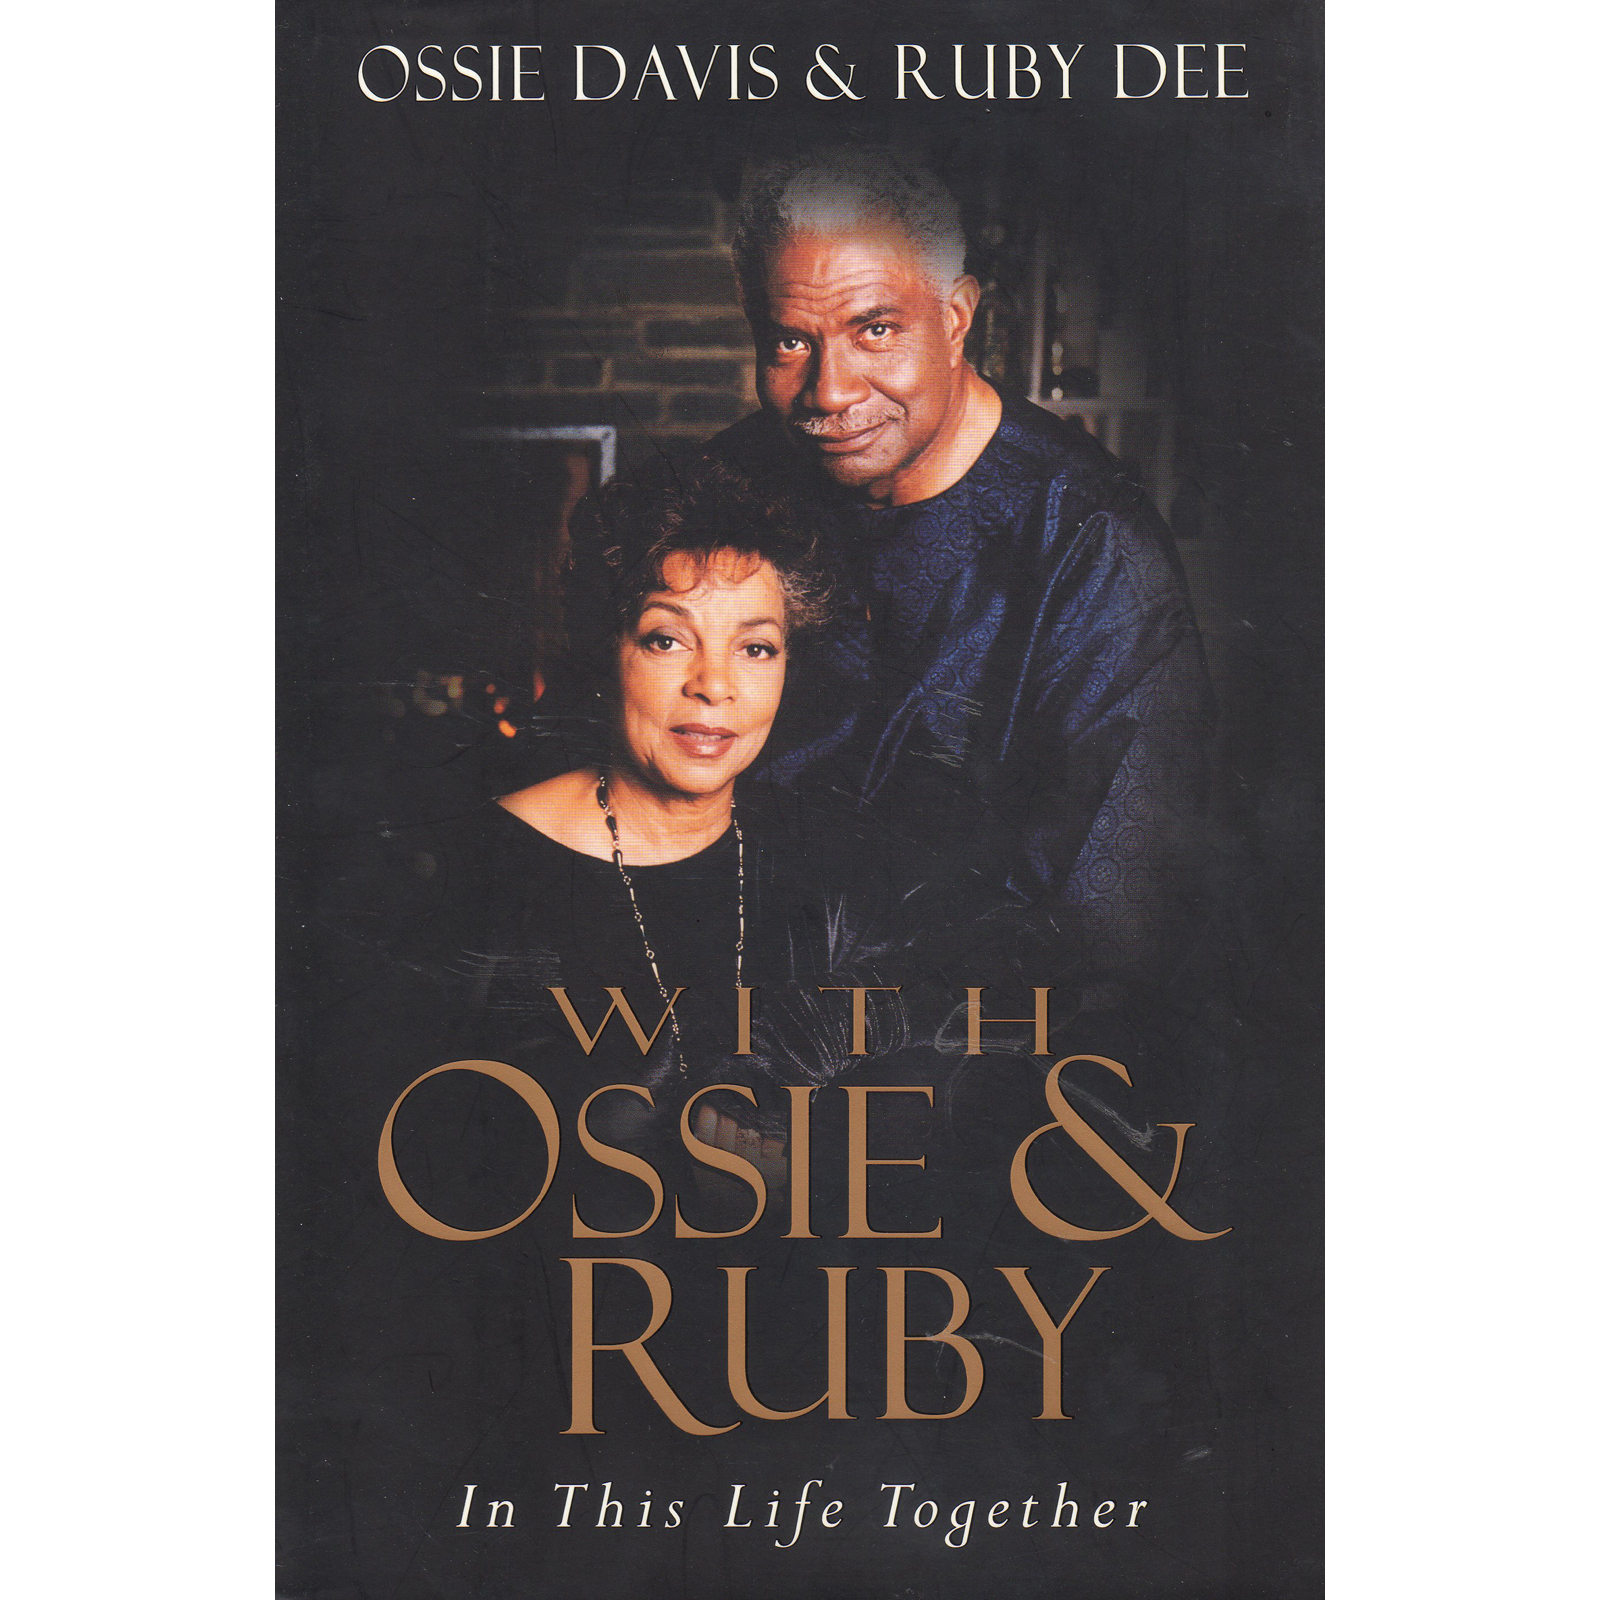 Ossie Davis Ruby Dee In This Life Together Book Autographed Signed